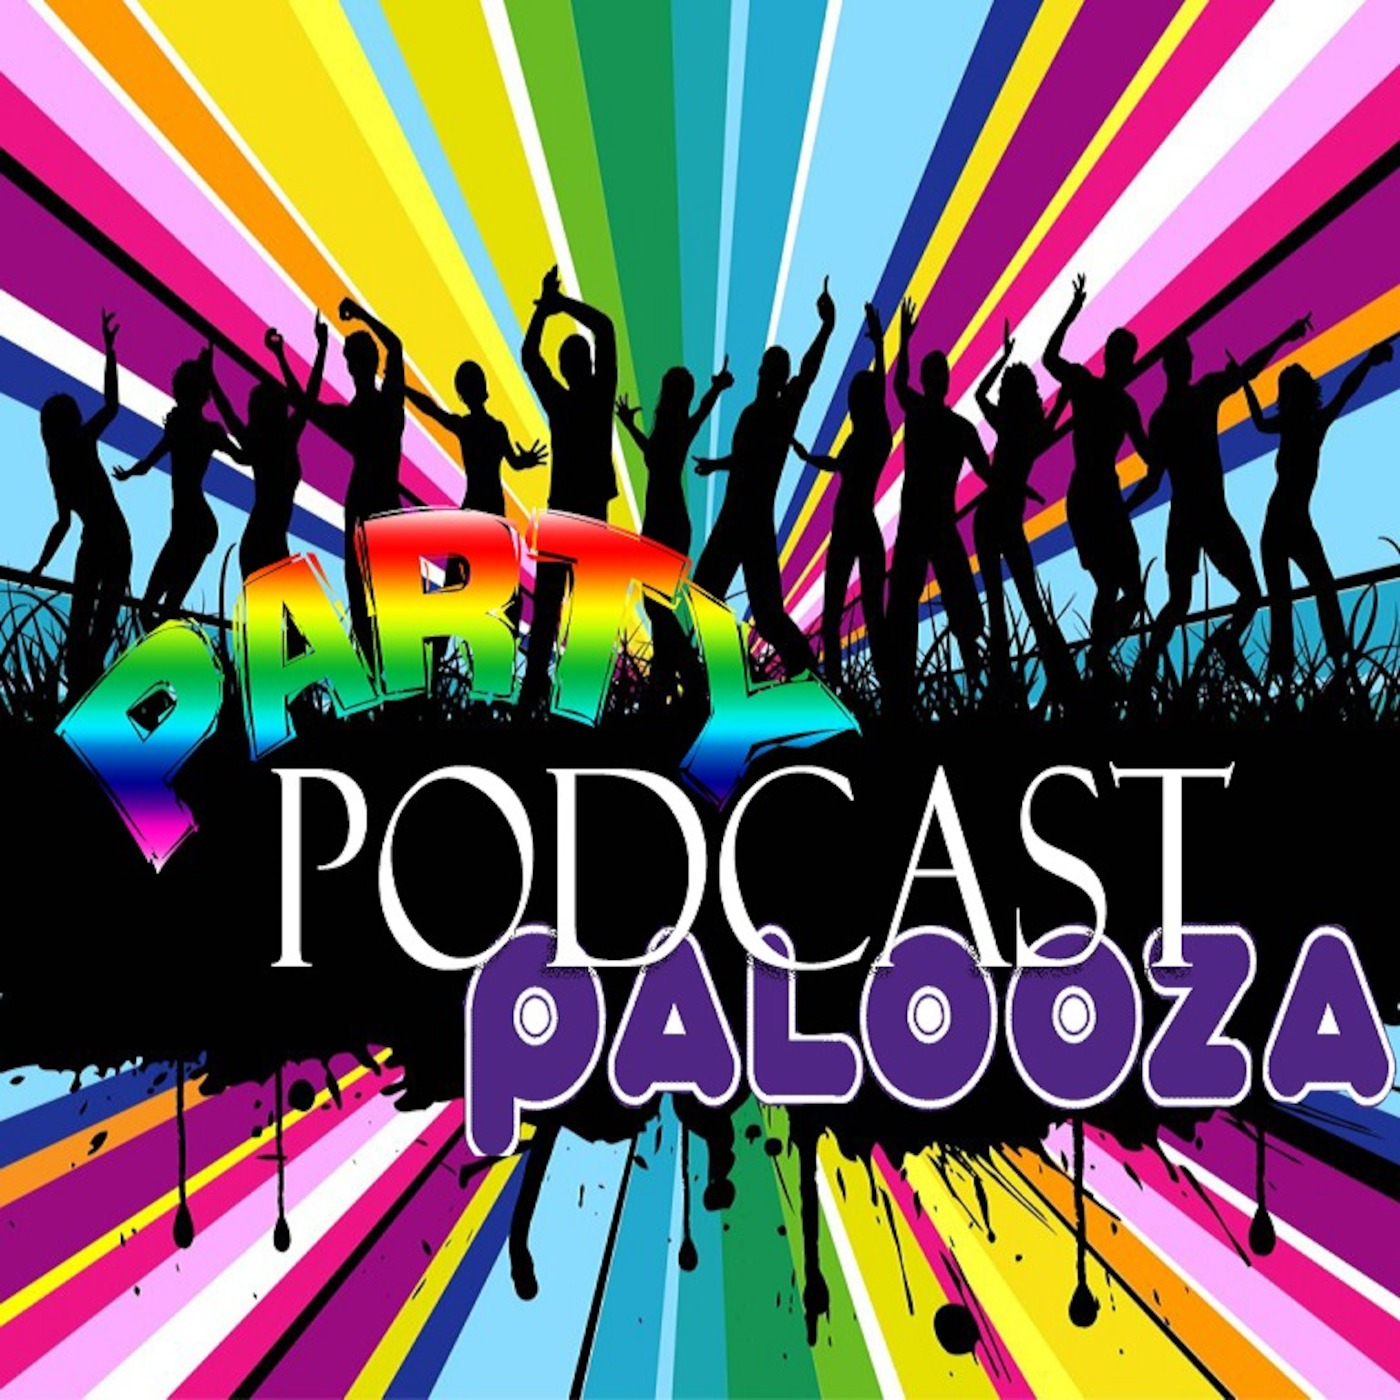 Party Podcast Palooza